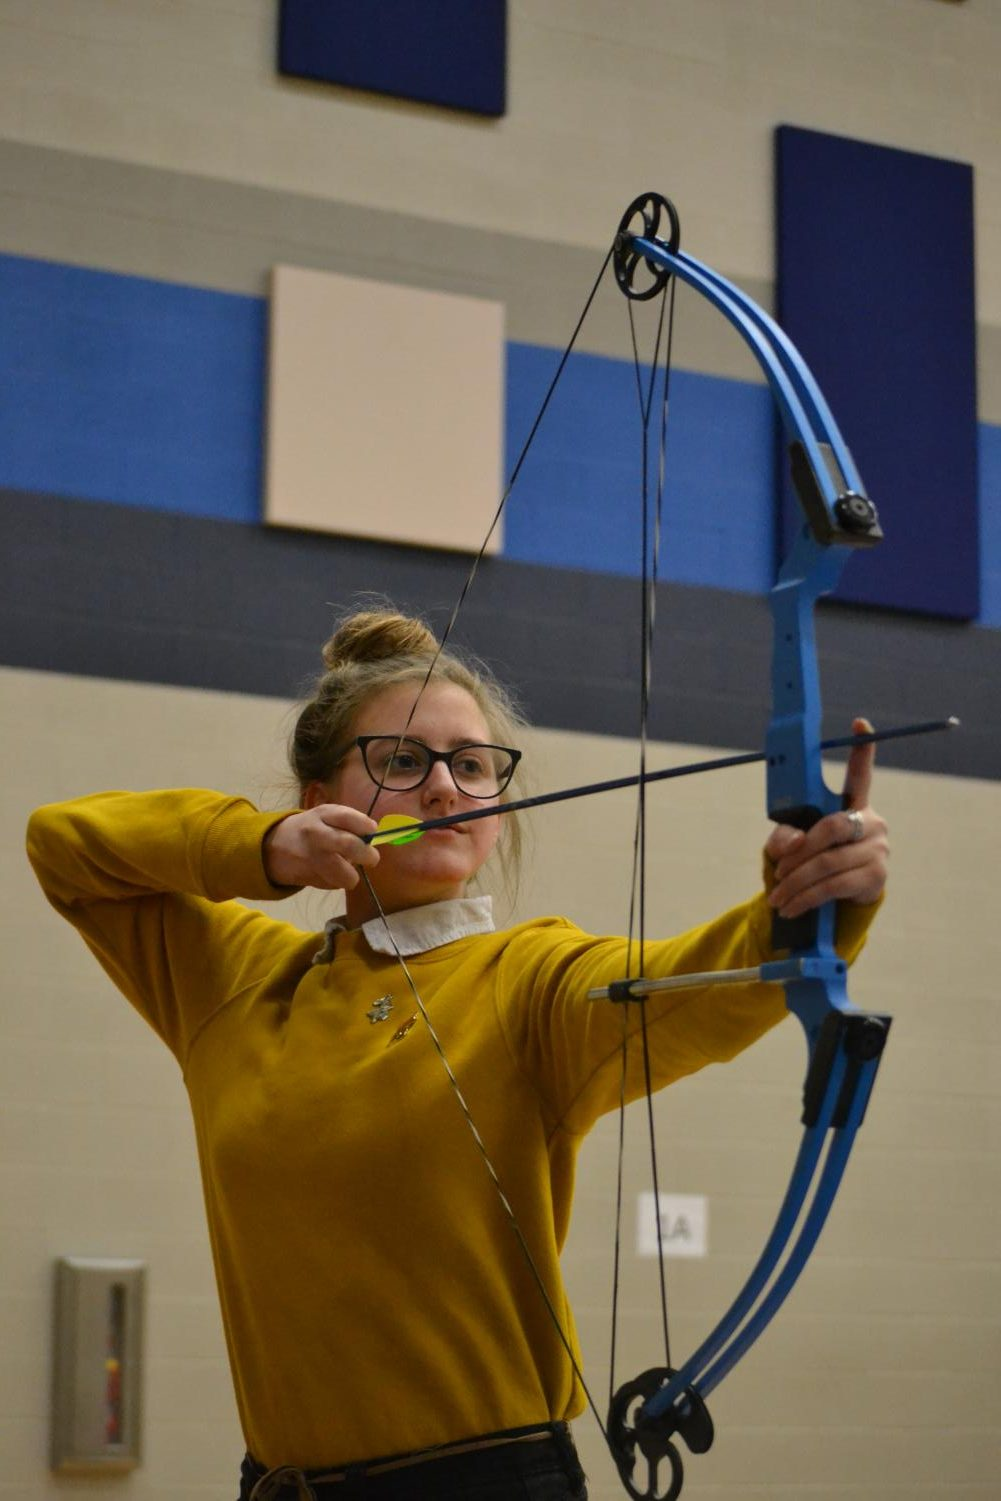 Eye+on+the+prize+%5C%5C+Aiming+at+her+target%2C+junior+Krista+Adams+practices+her+archery+skills.+The+archery+club+meets+every+Wednesday+during+Power+Hour.+Mr.+Chris+Bailey+sponsors+the+club+that+is+open+to+all+students.